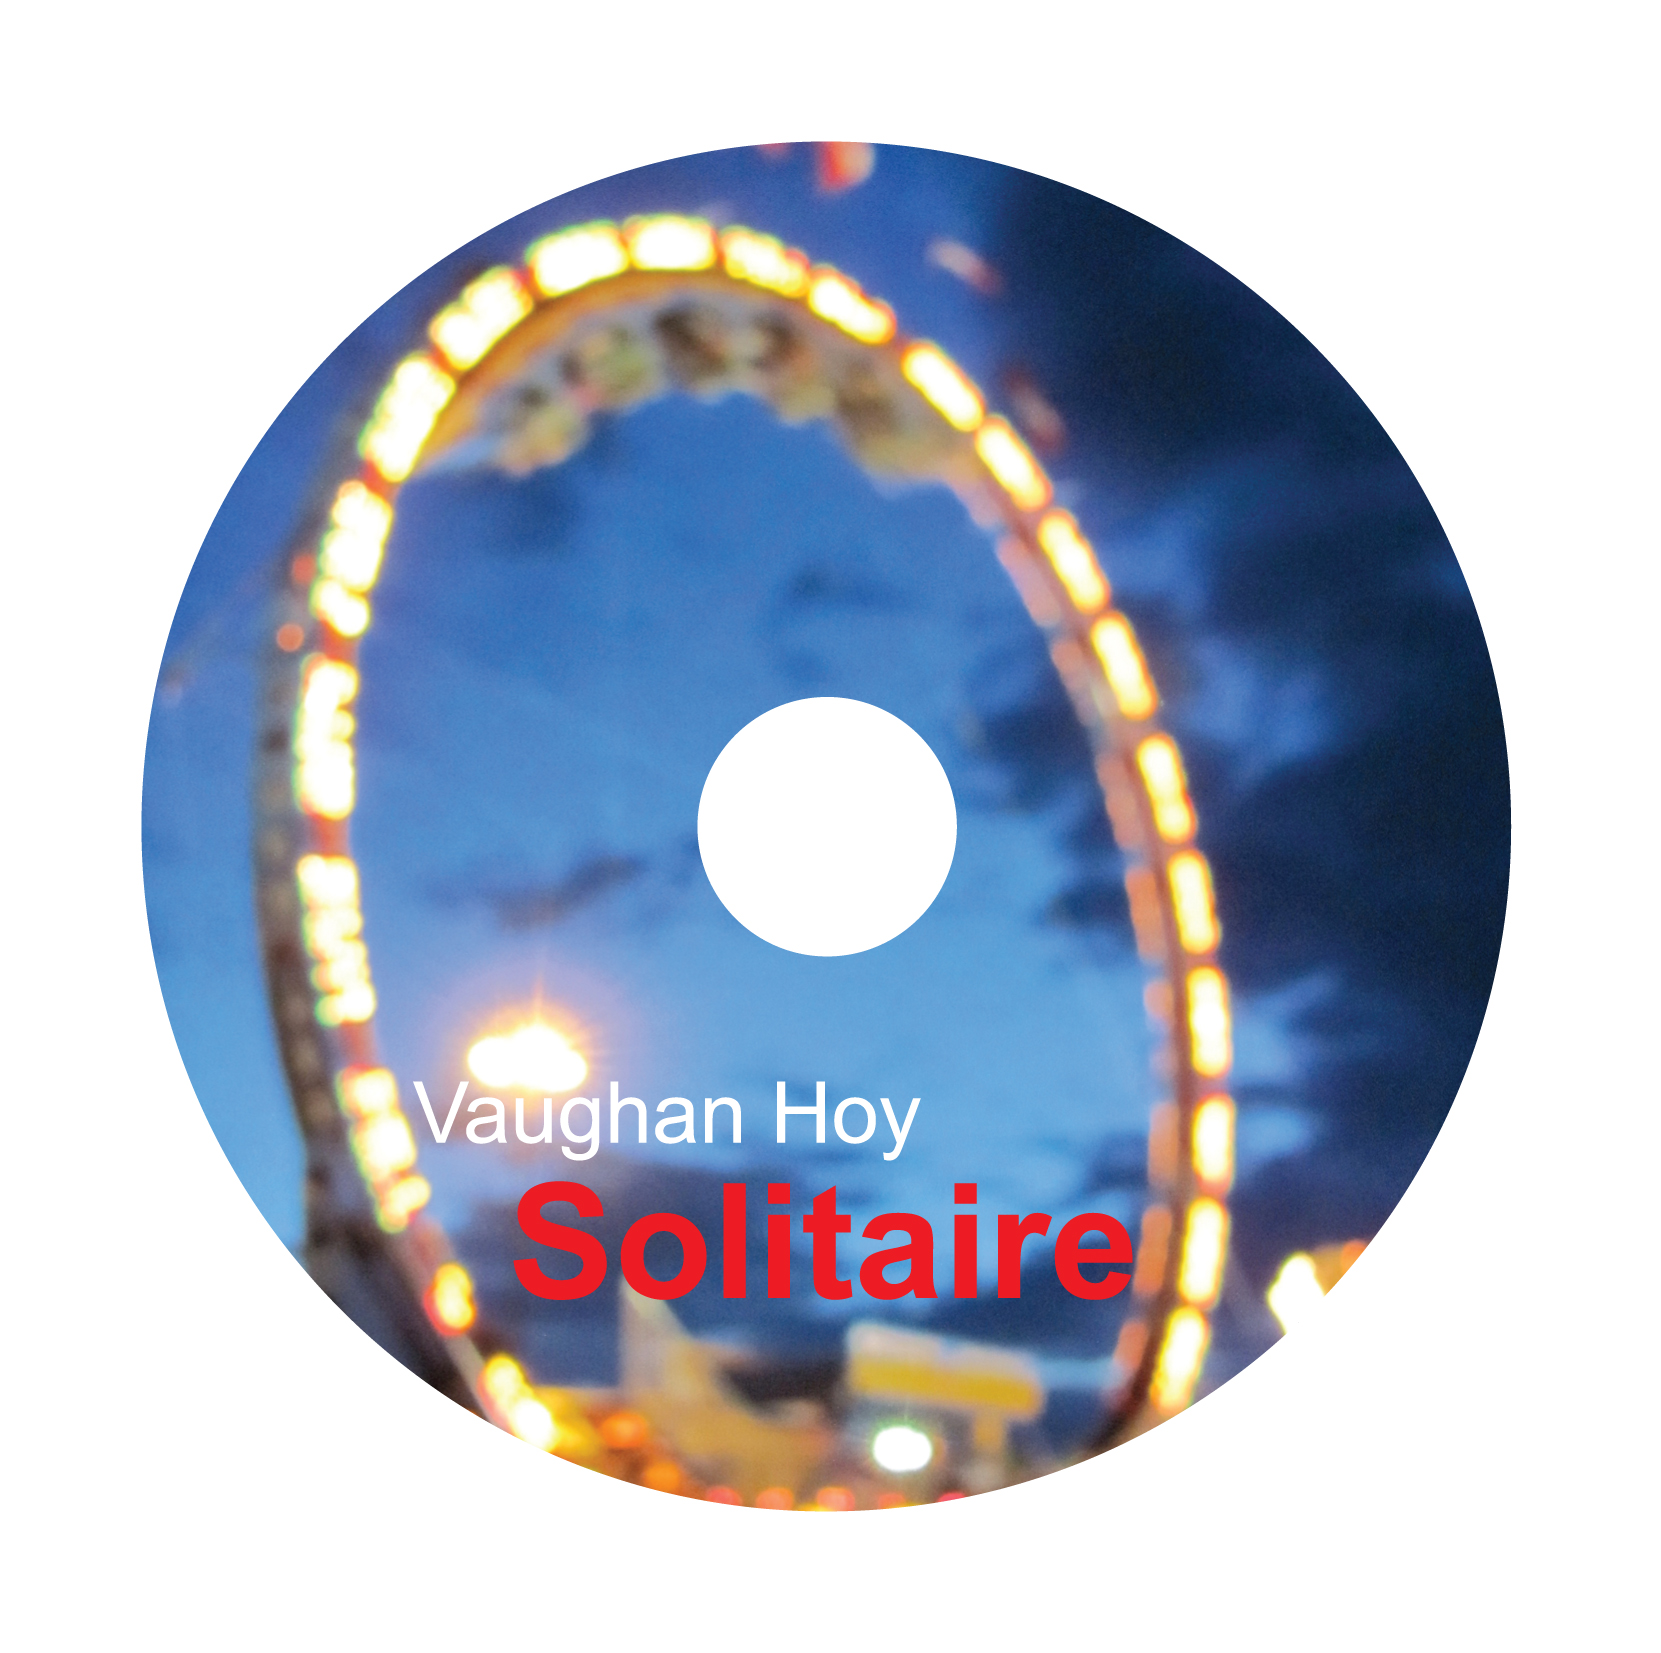 Solitaire Label